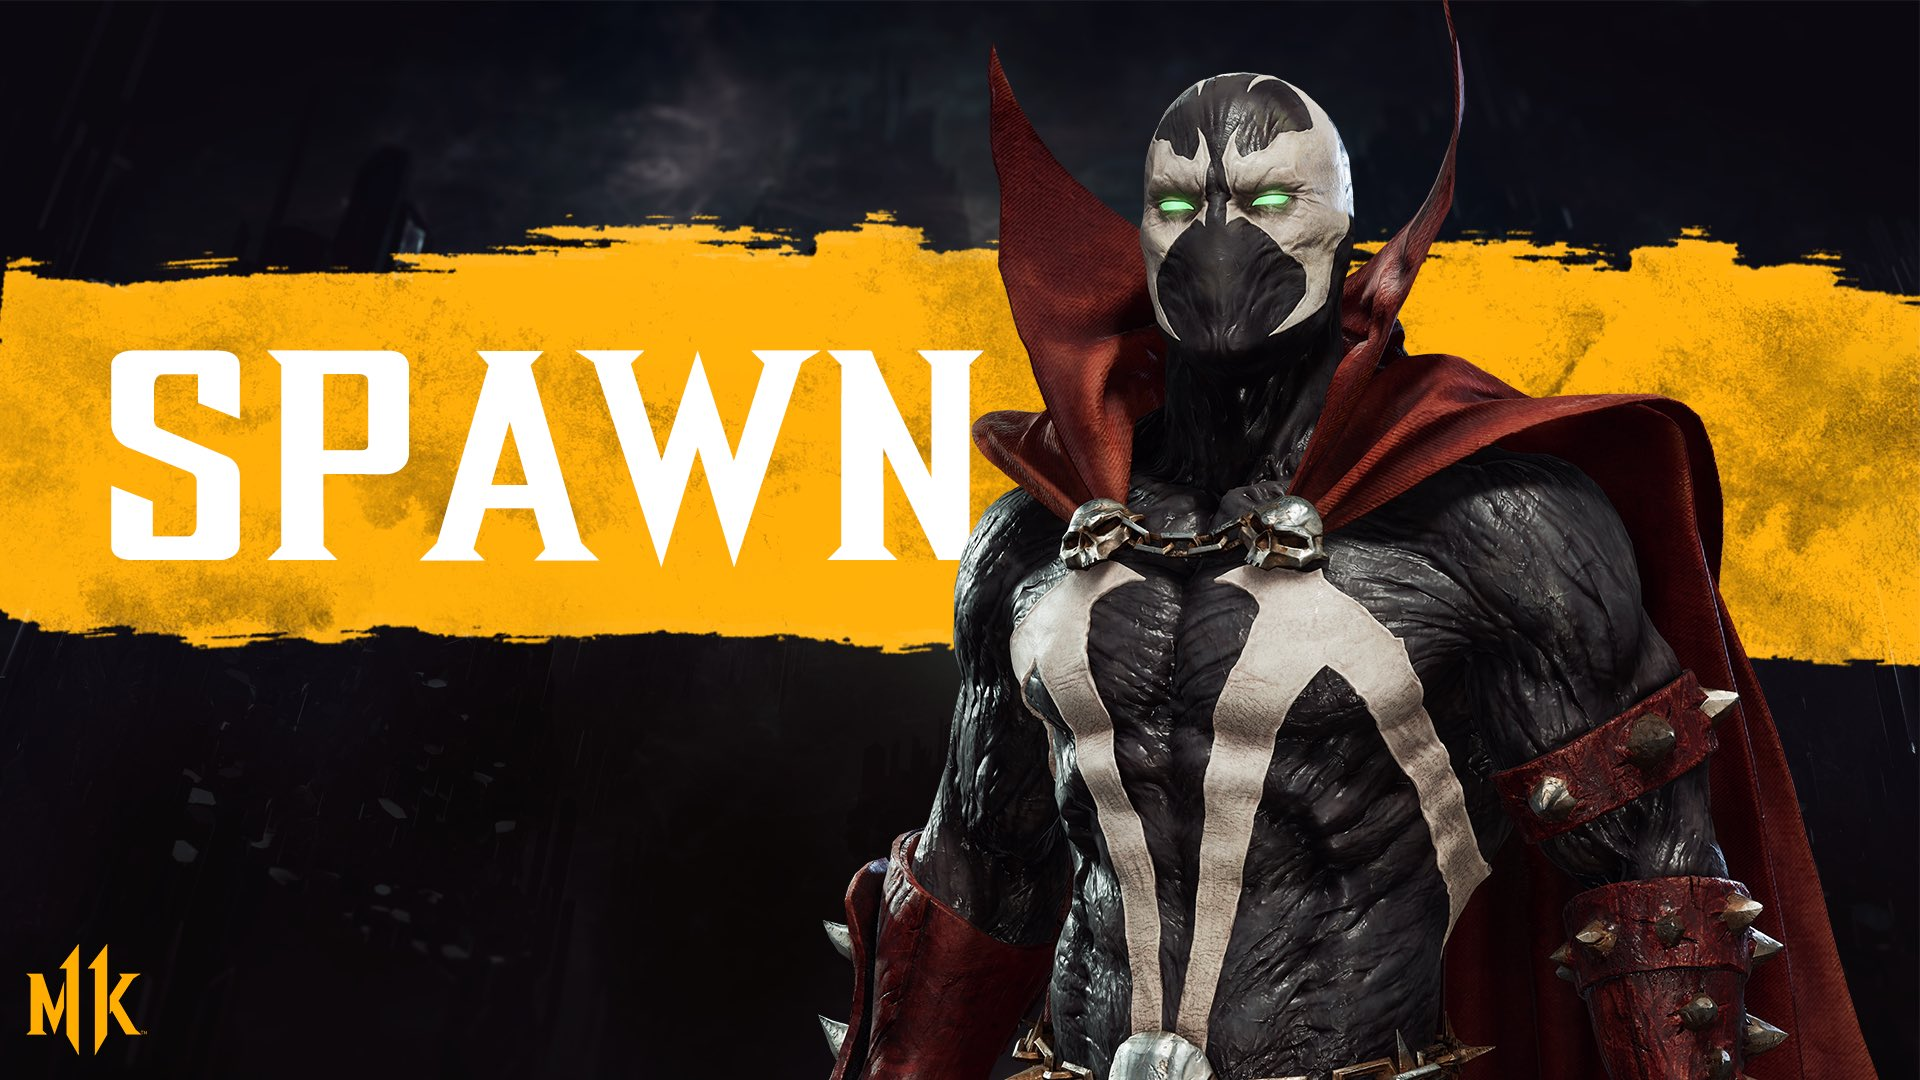 Mortal Kombat background - Spawn